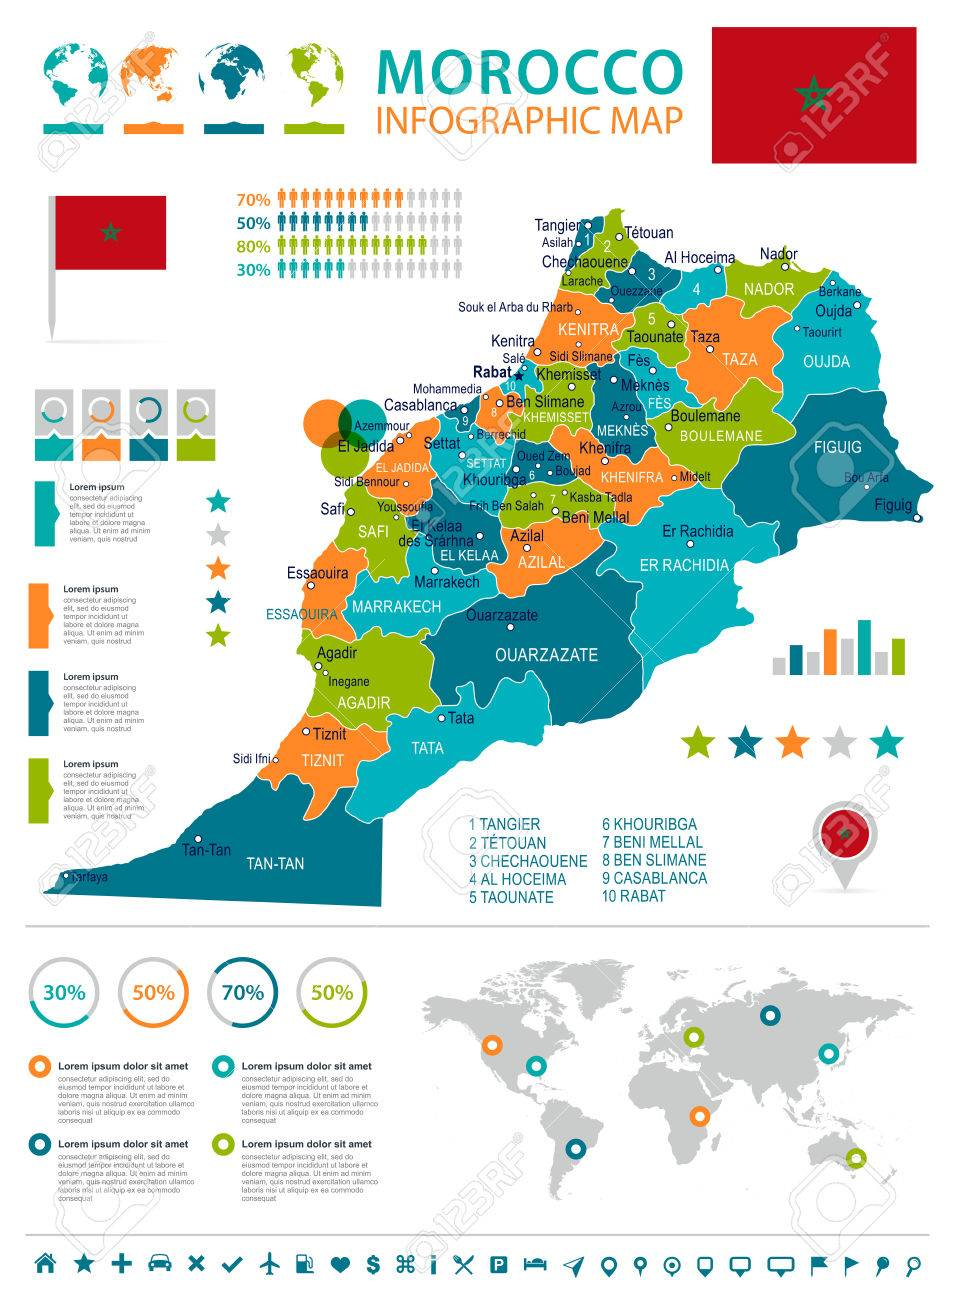 Morocco Infographic Map And Flag Vector Illustration Royalty Free